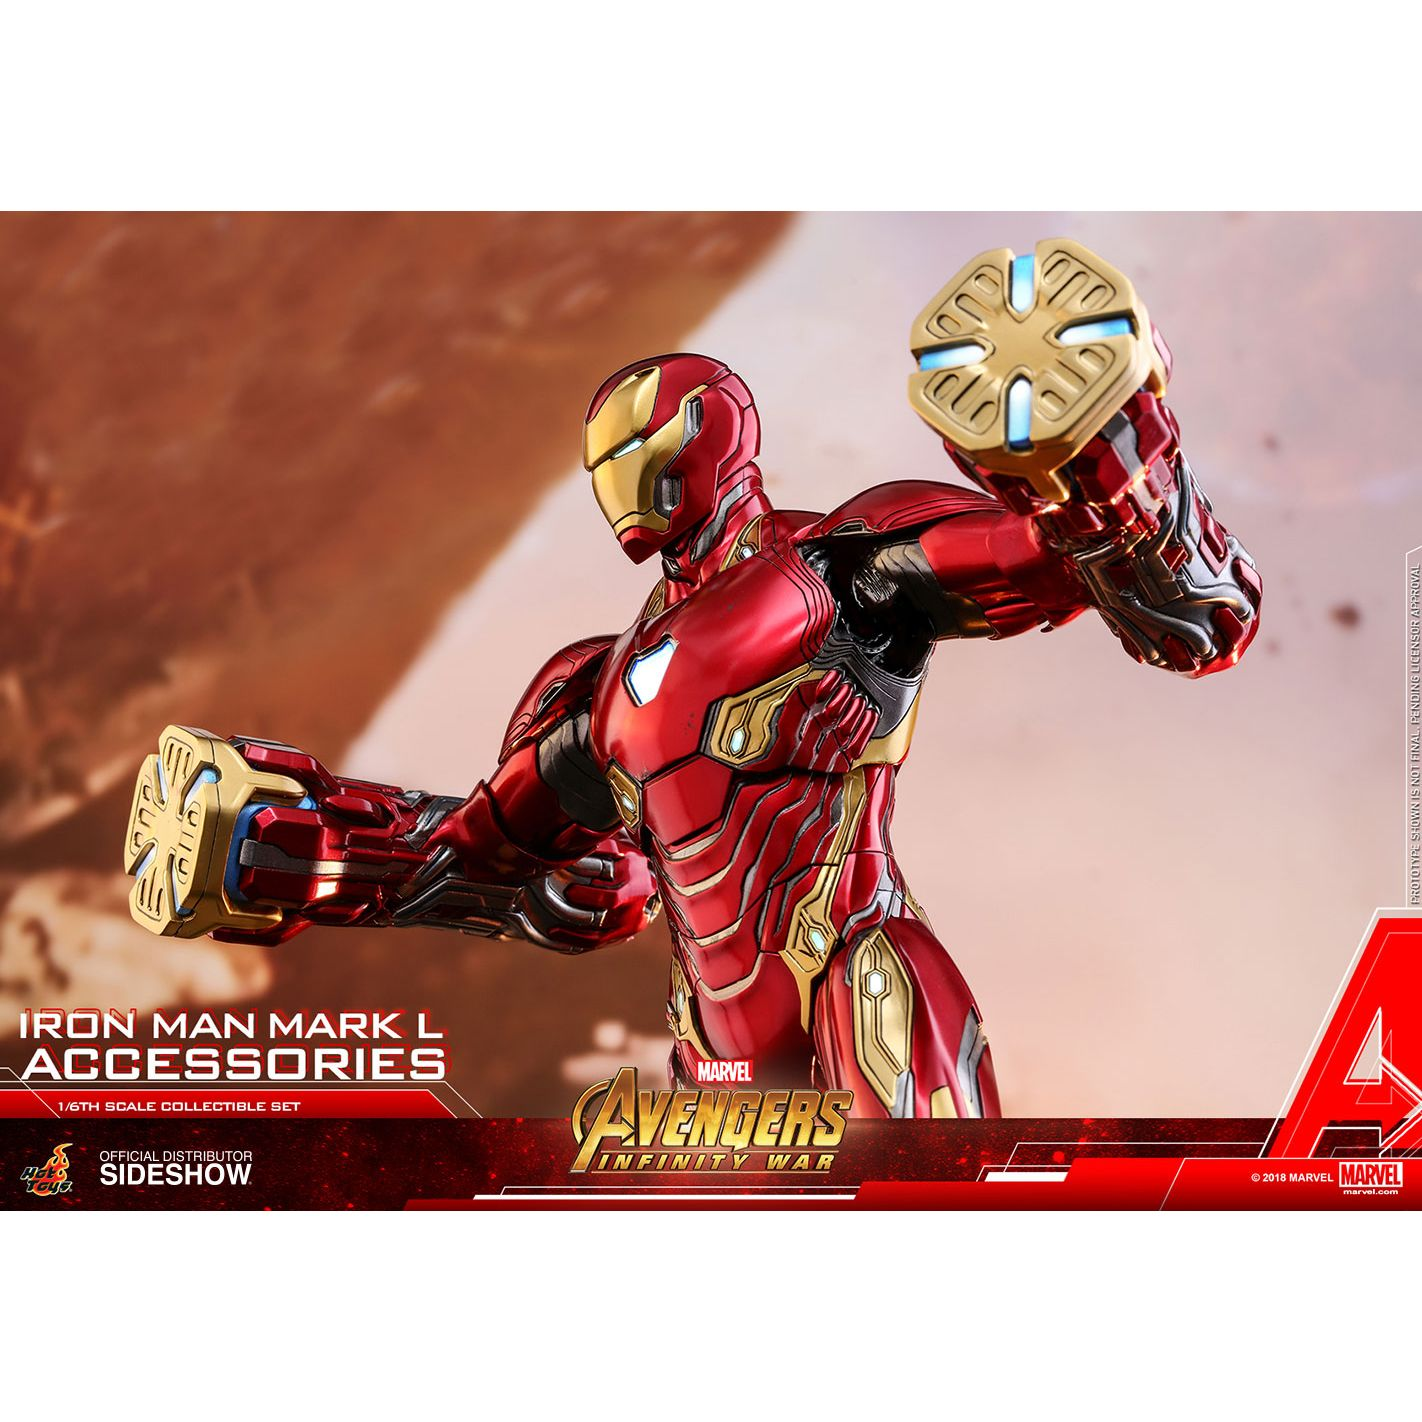 Iron Man Mark L Accessories (Special REGULAR Edition) Collectible Set by  Hot Toys Accessories Collection Series - Avengers: Infinity War 903804